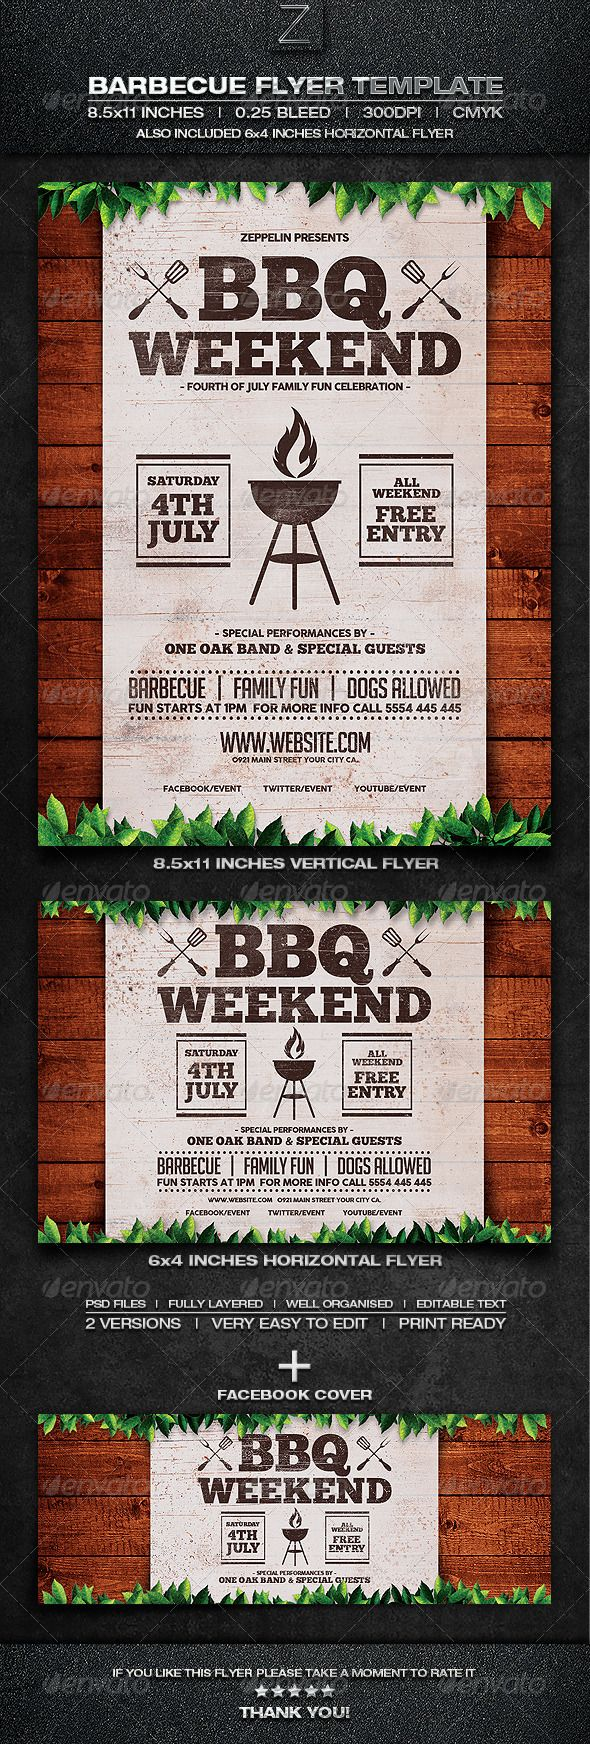 barbecue flyer template  barbeque poster  fourth of july